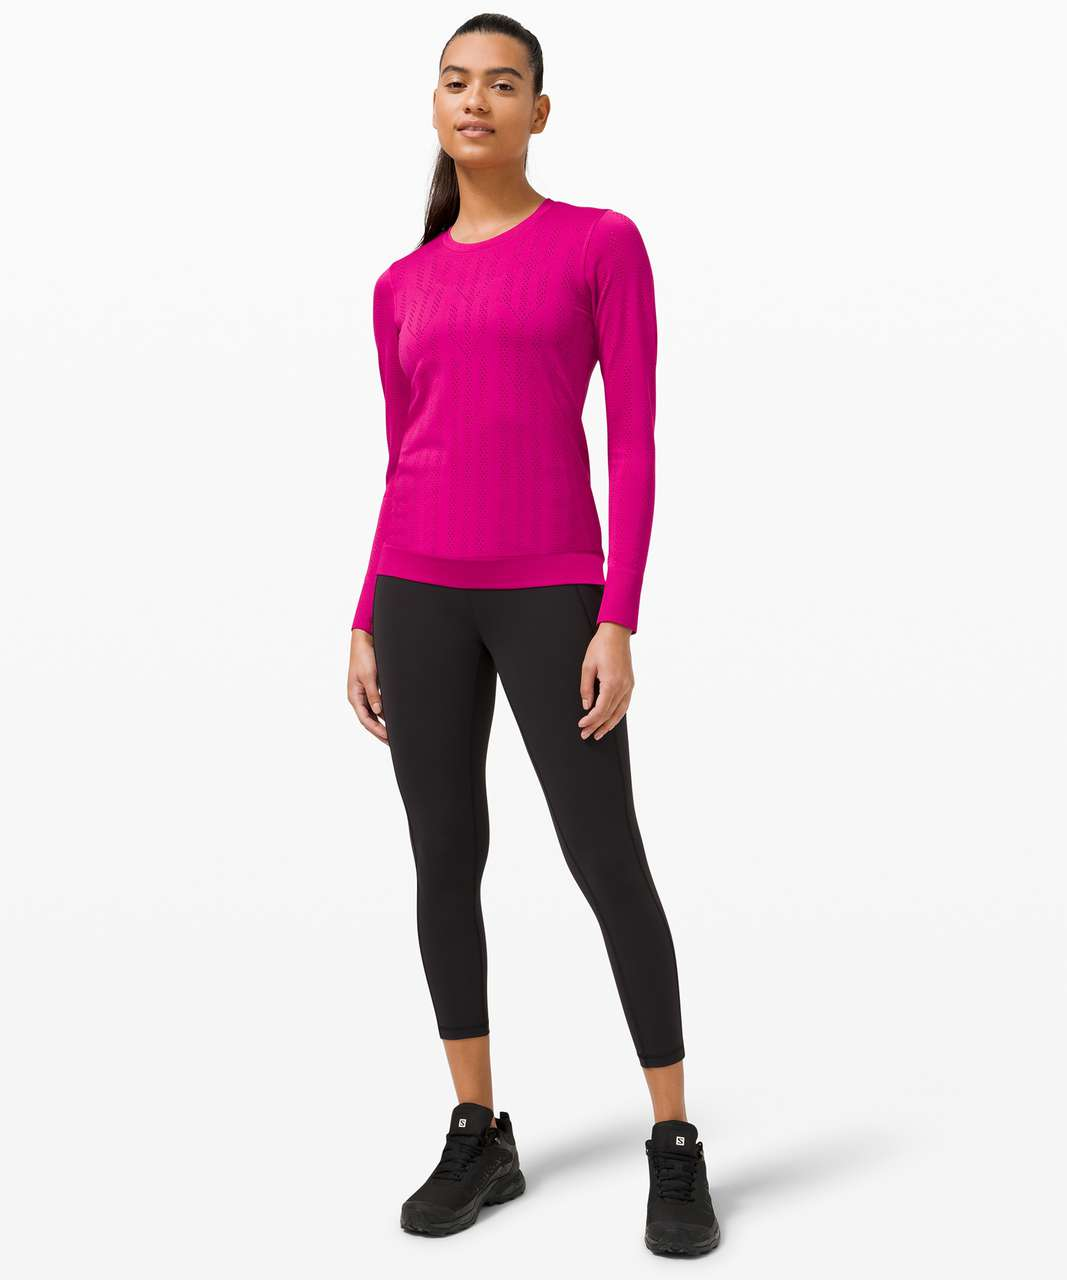 Lululemon Swiftly Breathe Long Sleeve *Fetching Lines - Fletching Lines Ripened Raspberry